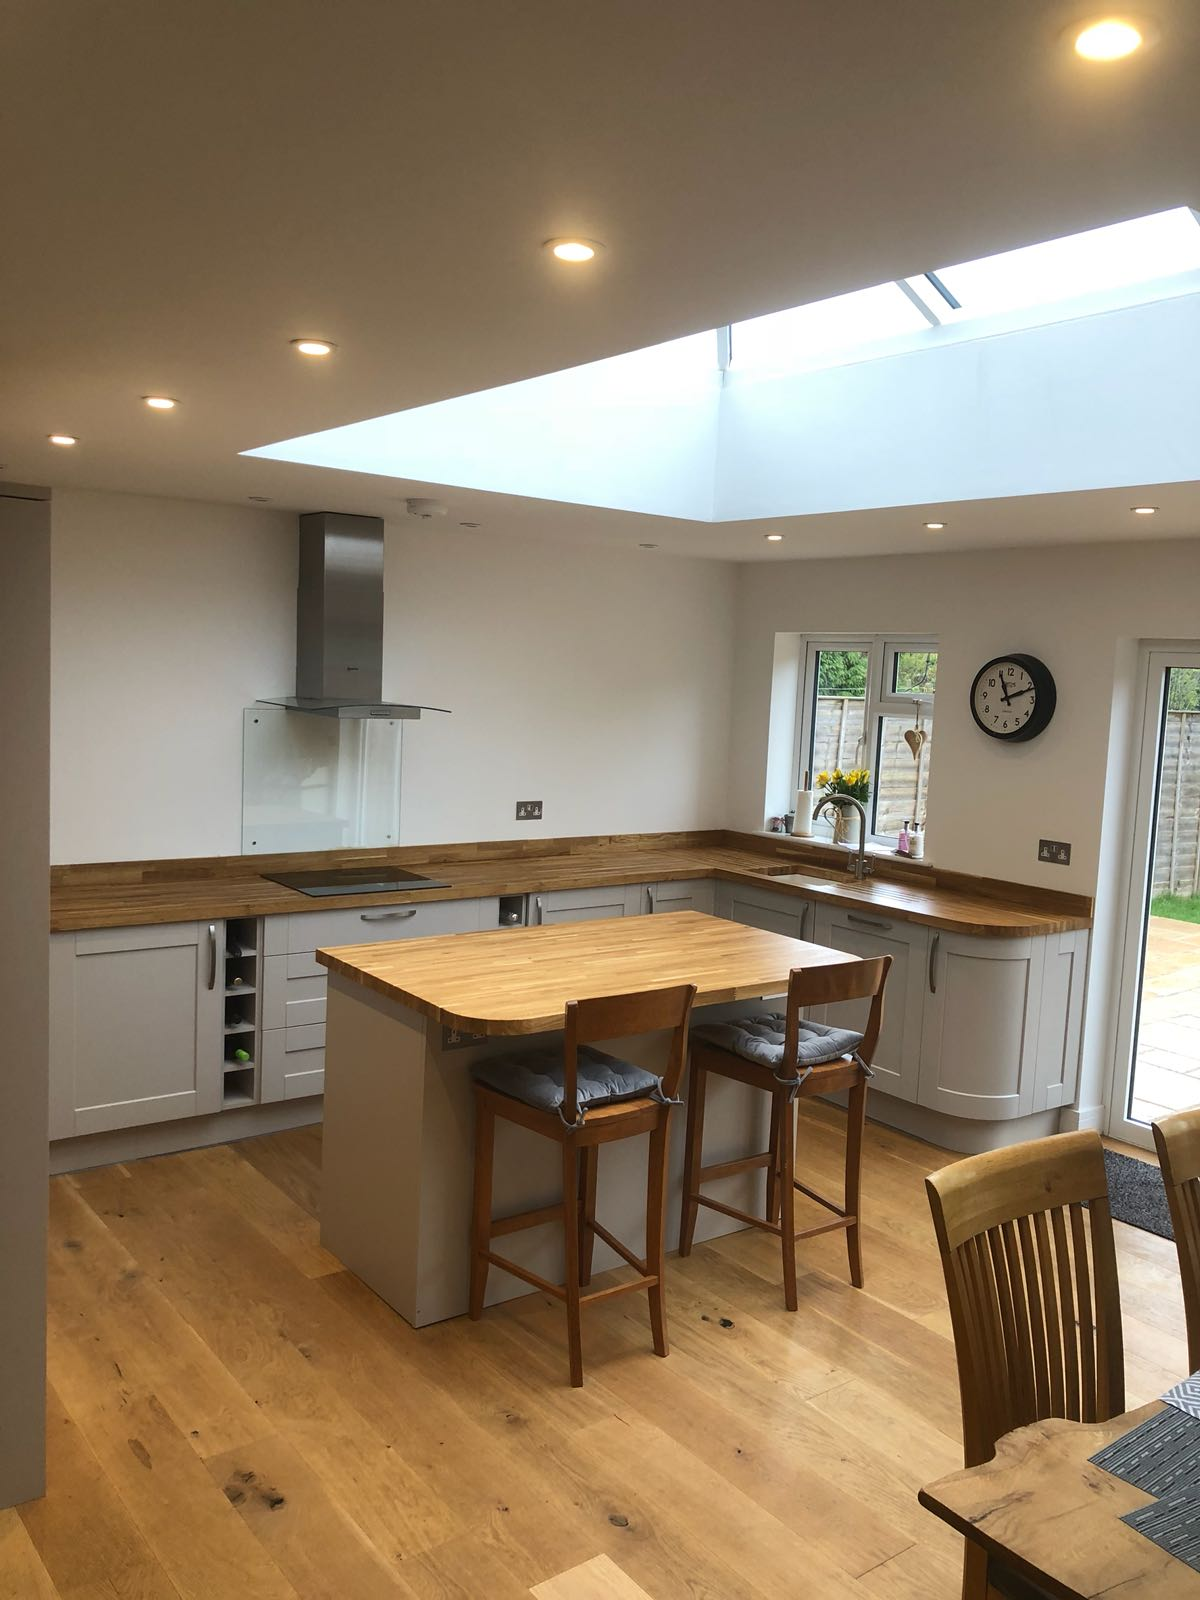 Headington engineered oak flooring and solid oak worktops installed, sanded and sealed into a new kitchen diner